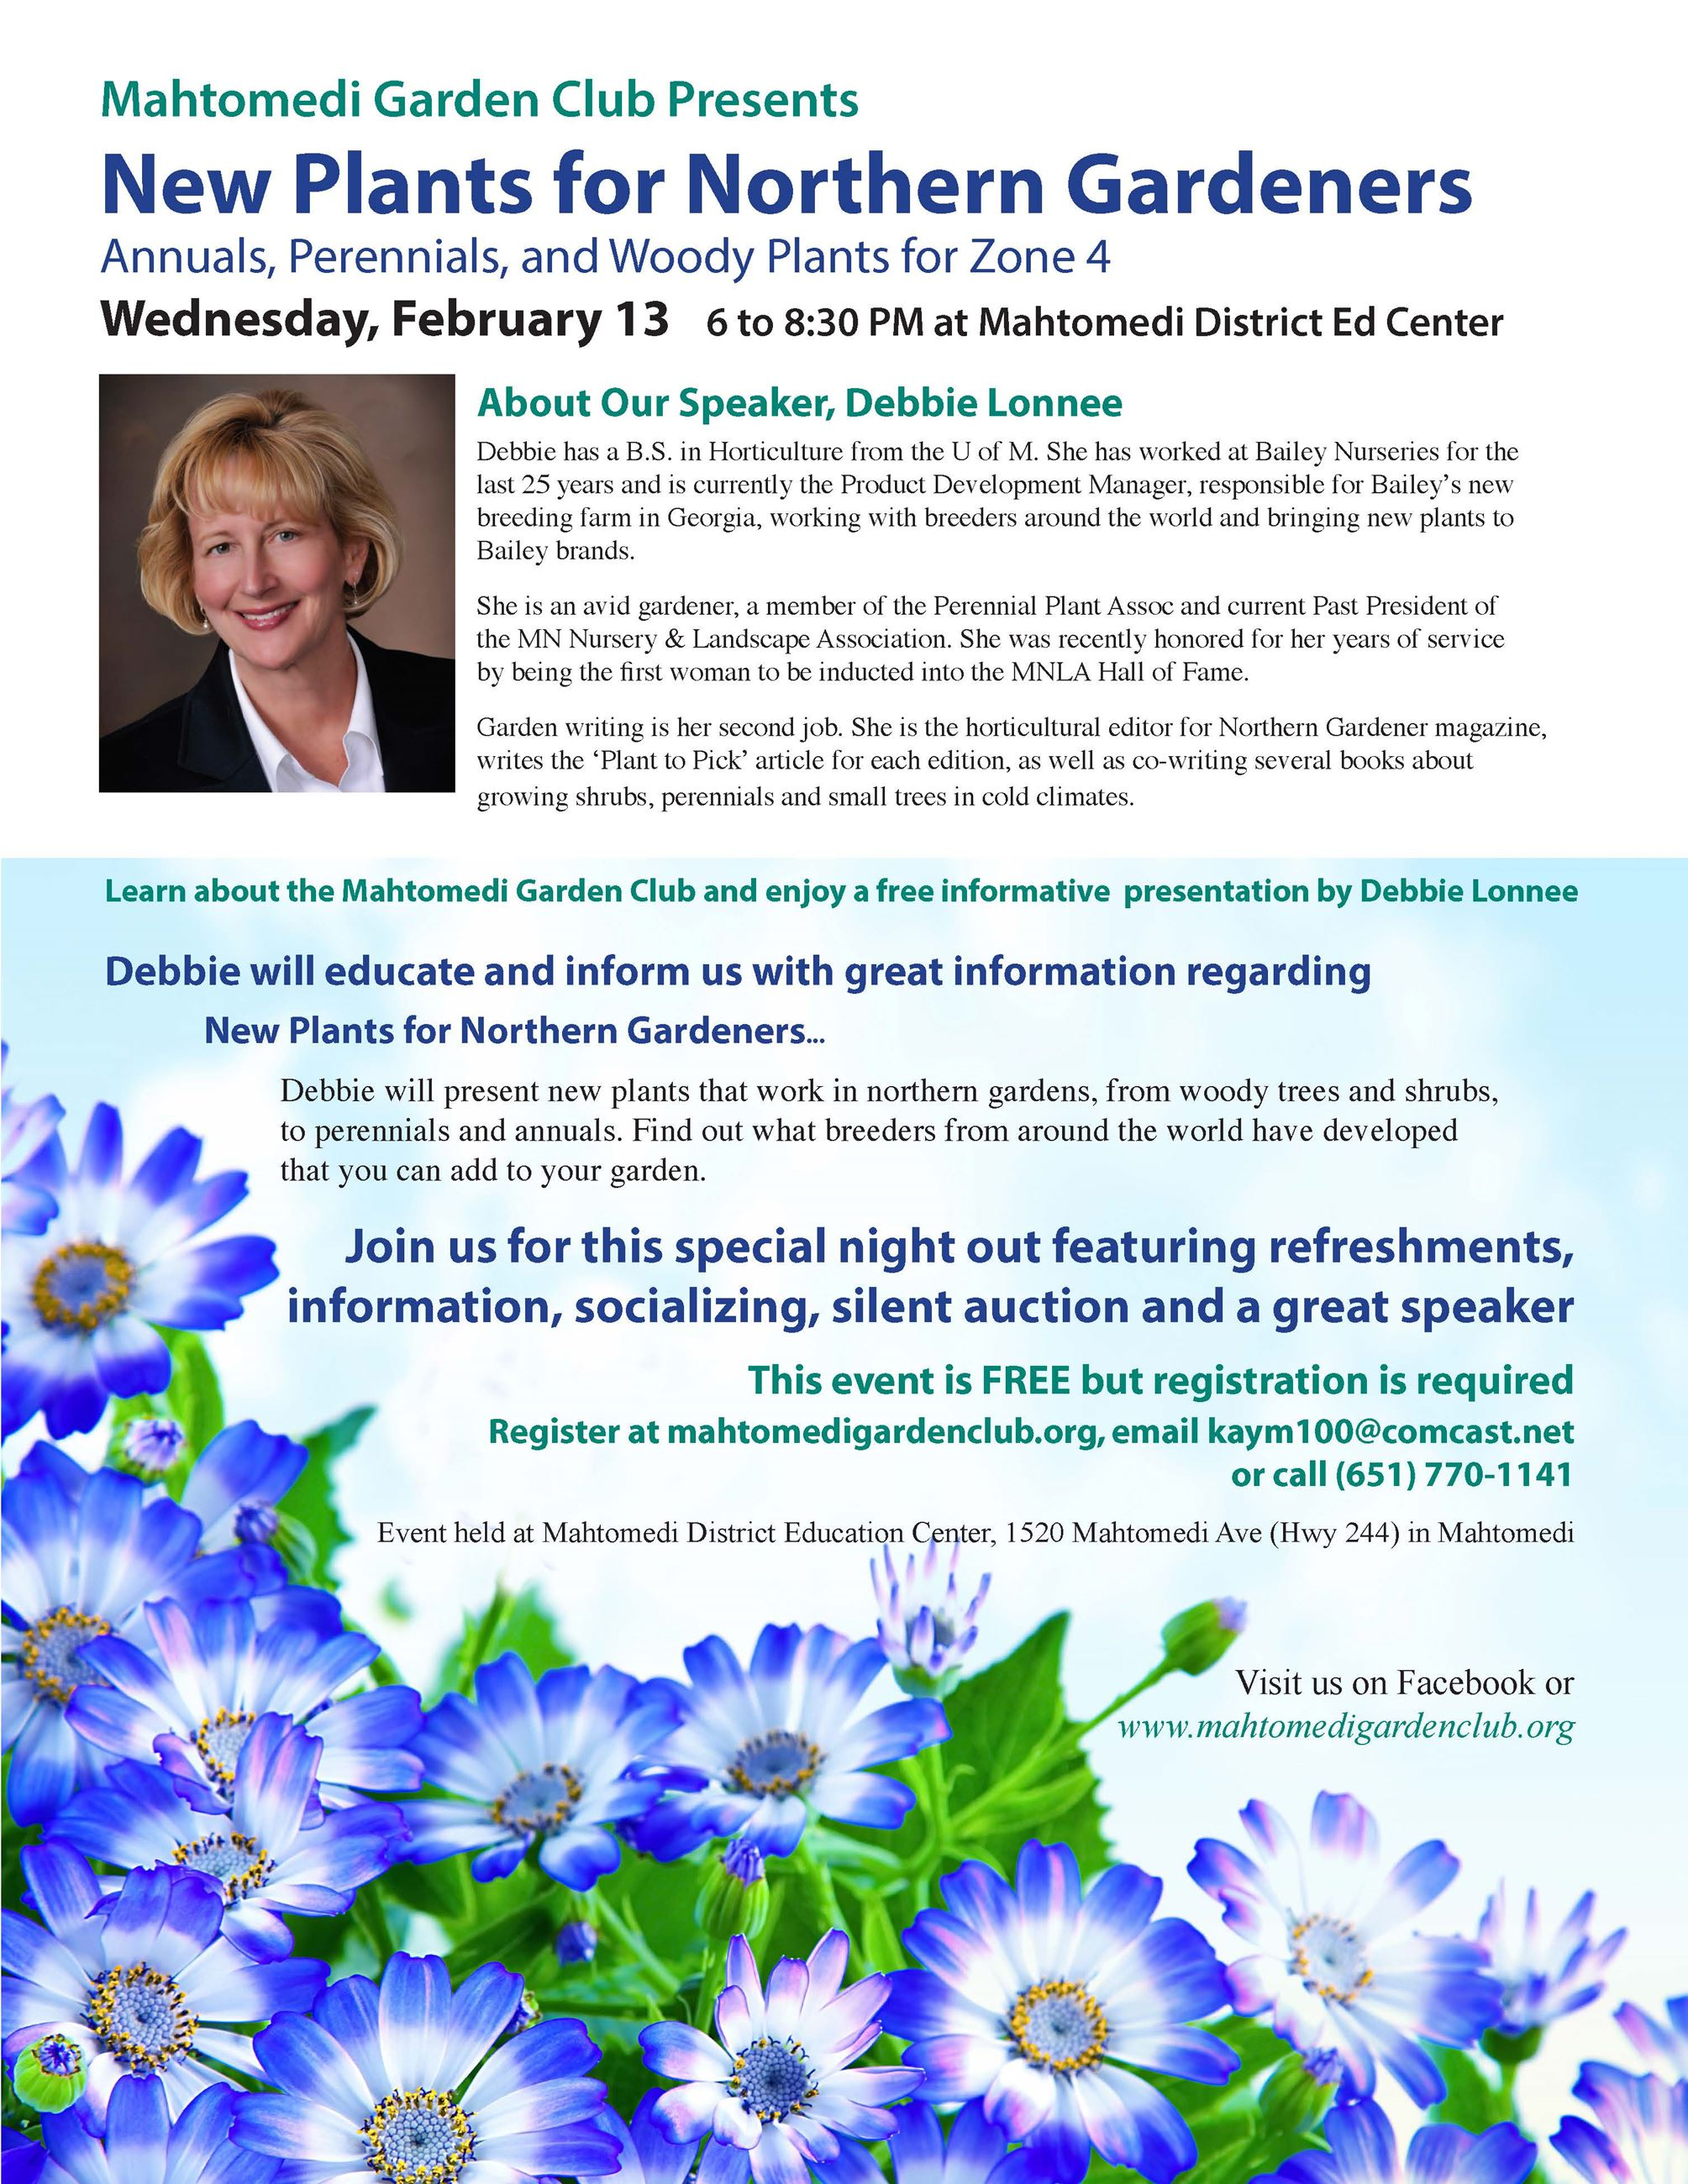 Mahtomedi Garden Club Outreach Flyer (IMAGE)